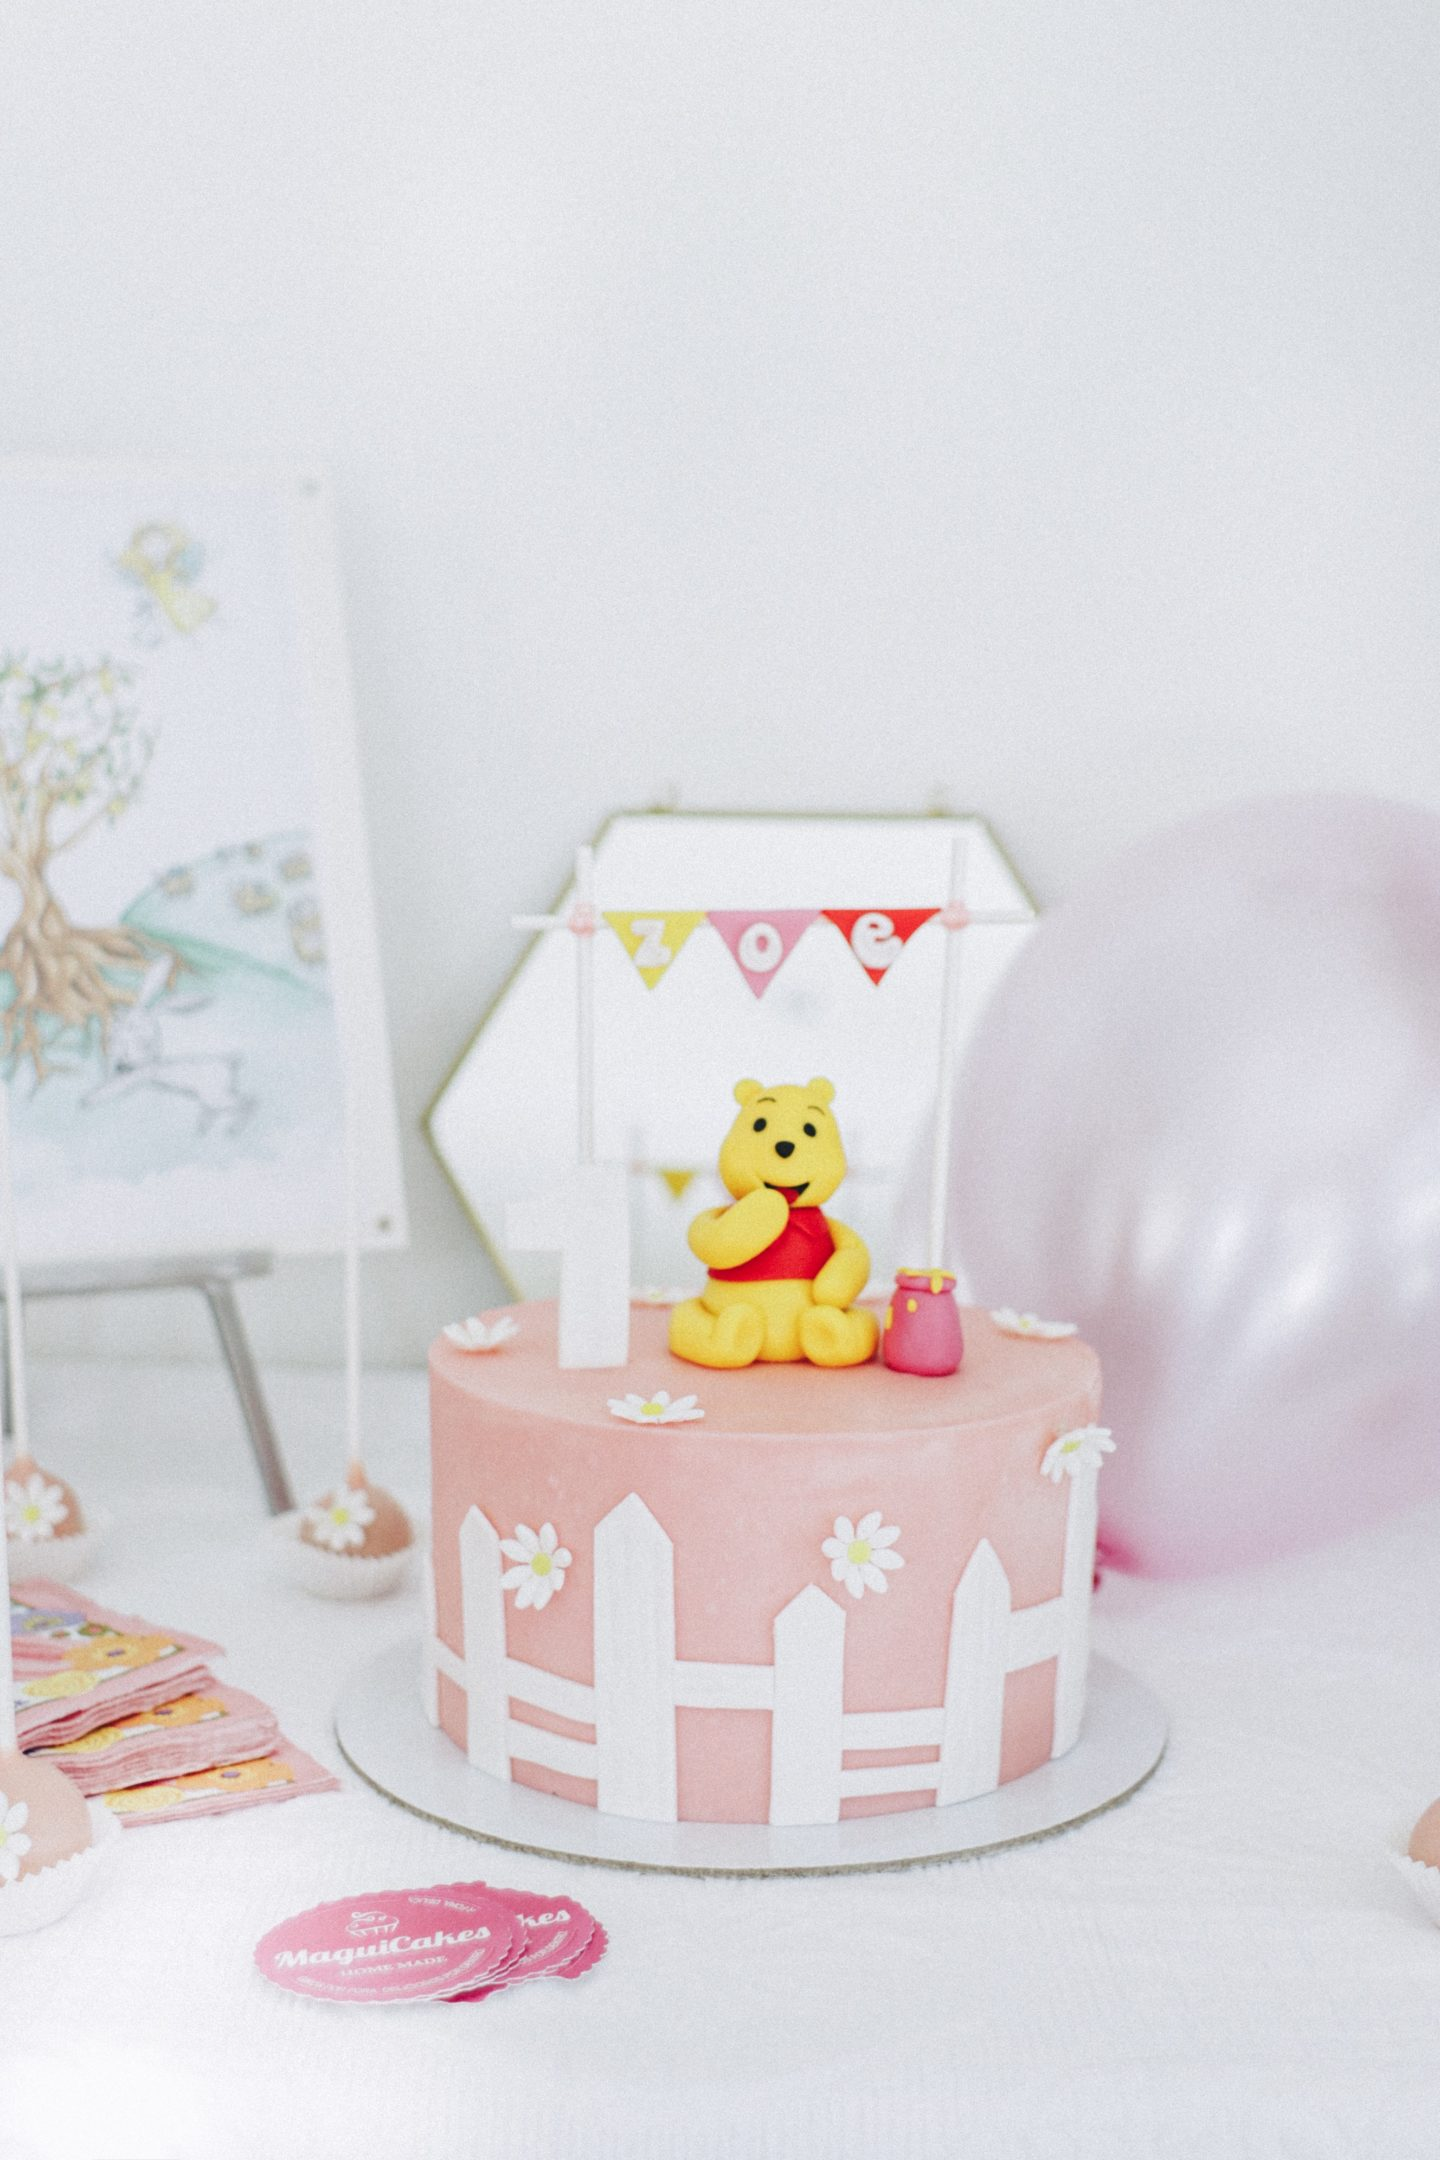 Zoe's First Birthday Party, themed pink, gold and white! Winnie-The-Pooh birthday cake! - thecasualfree.com